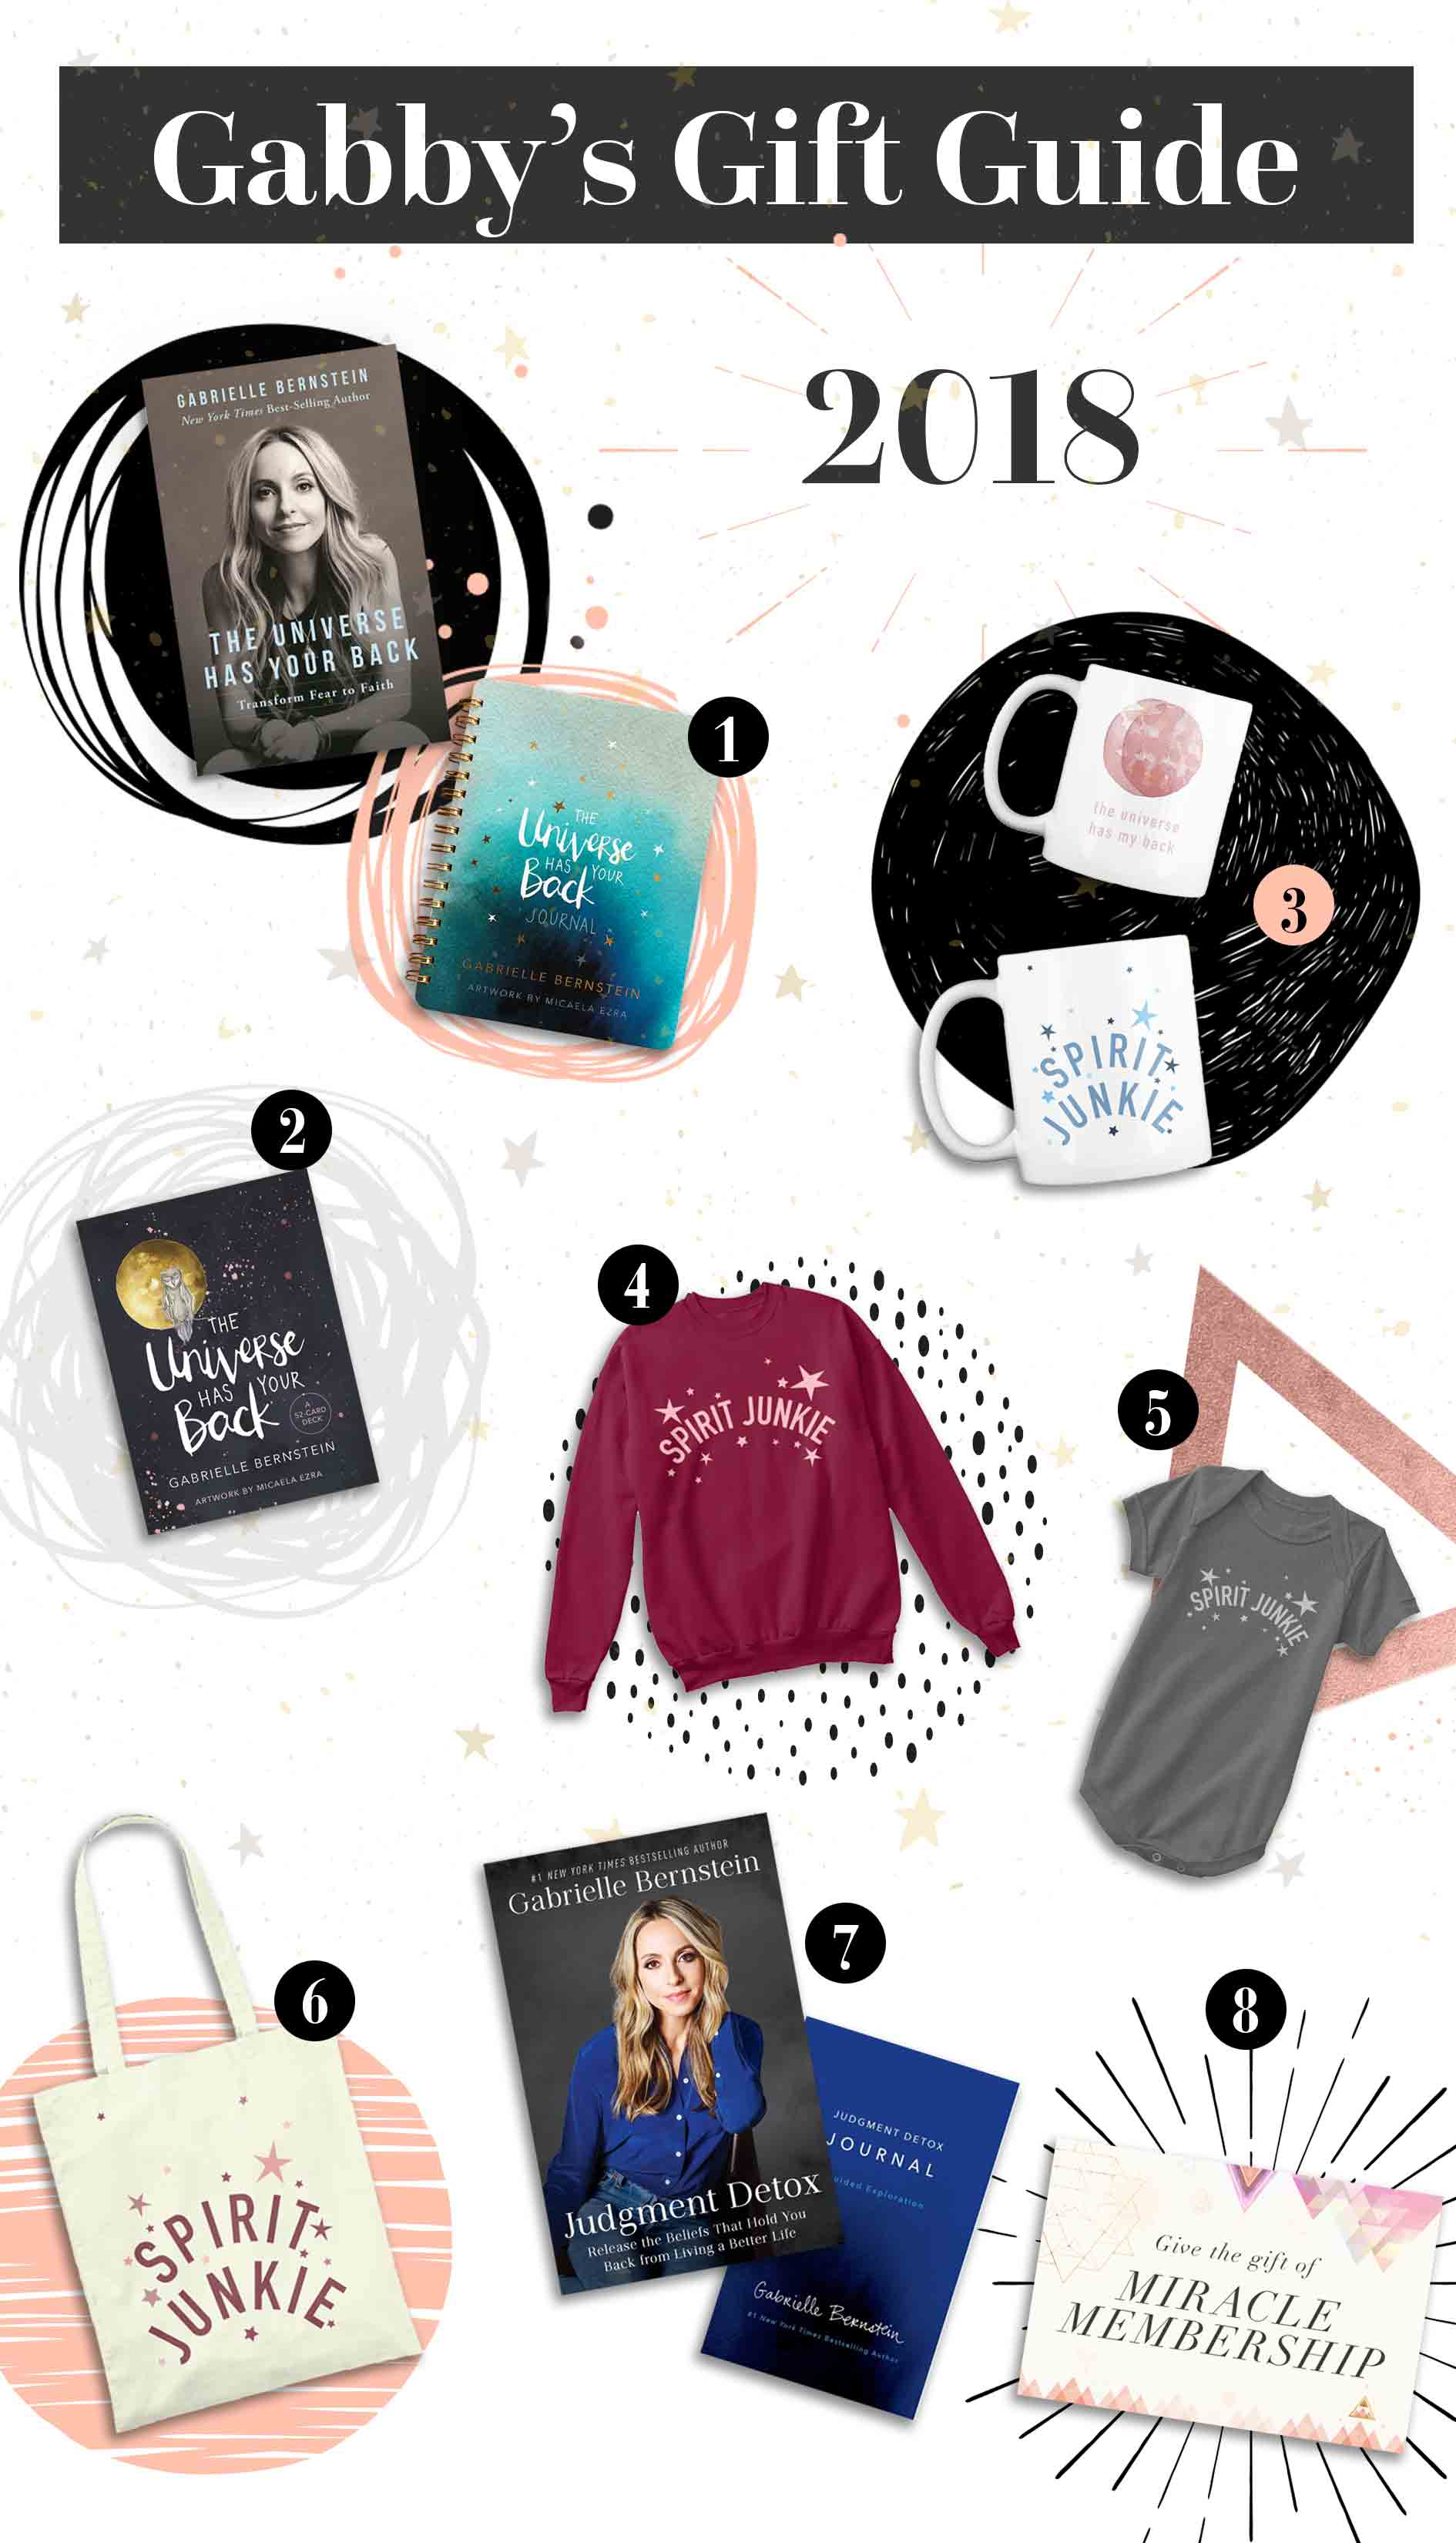 Gabby Bernstein's 2018 holiday gift guide